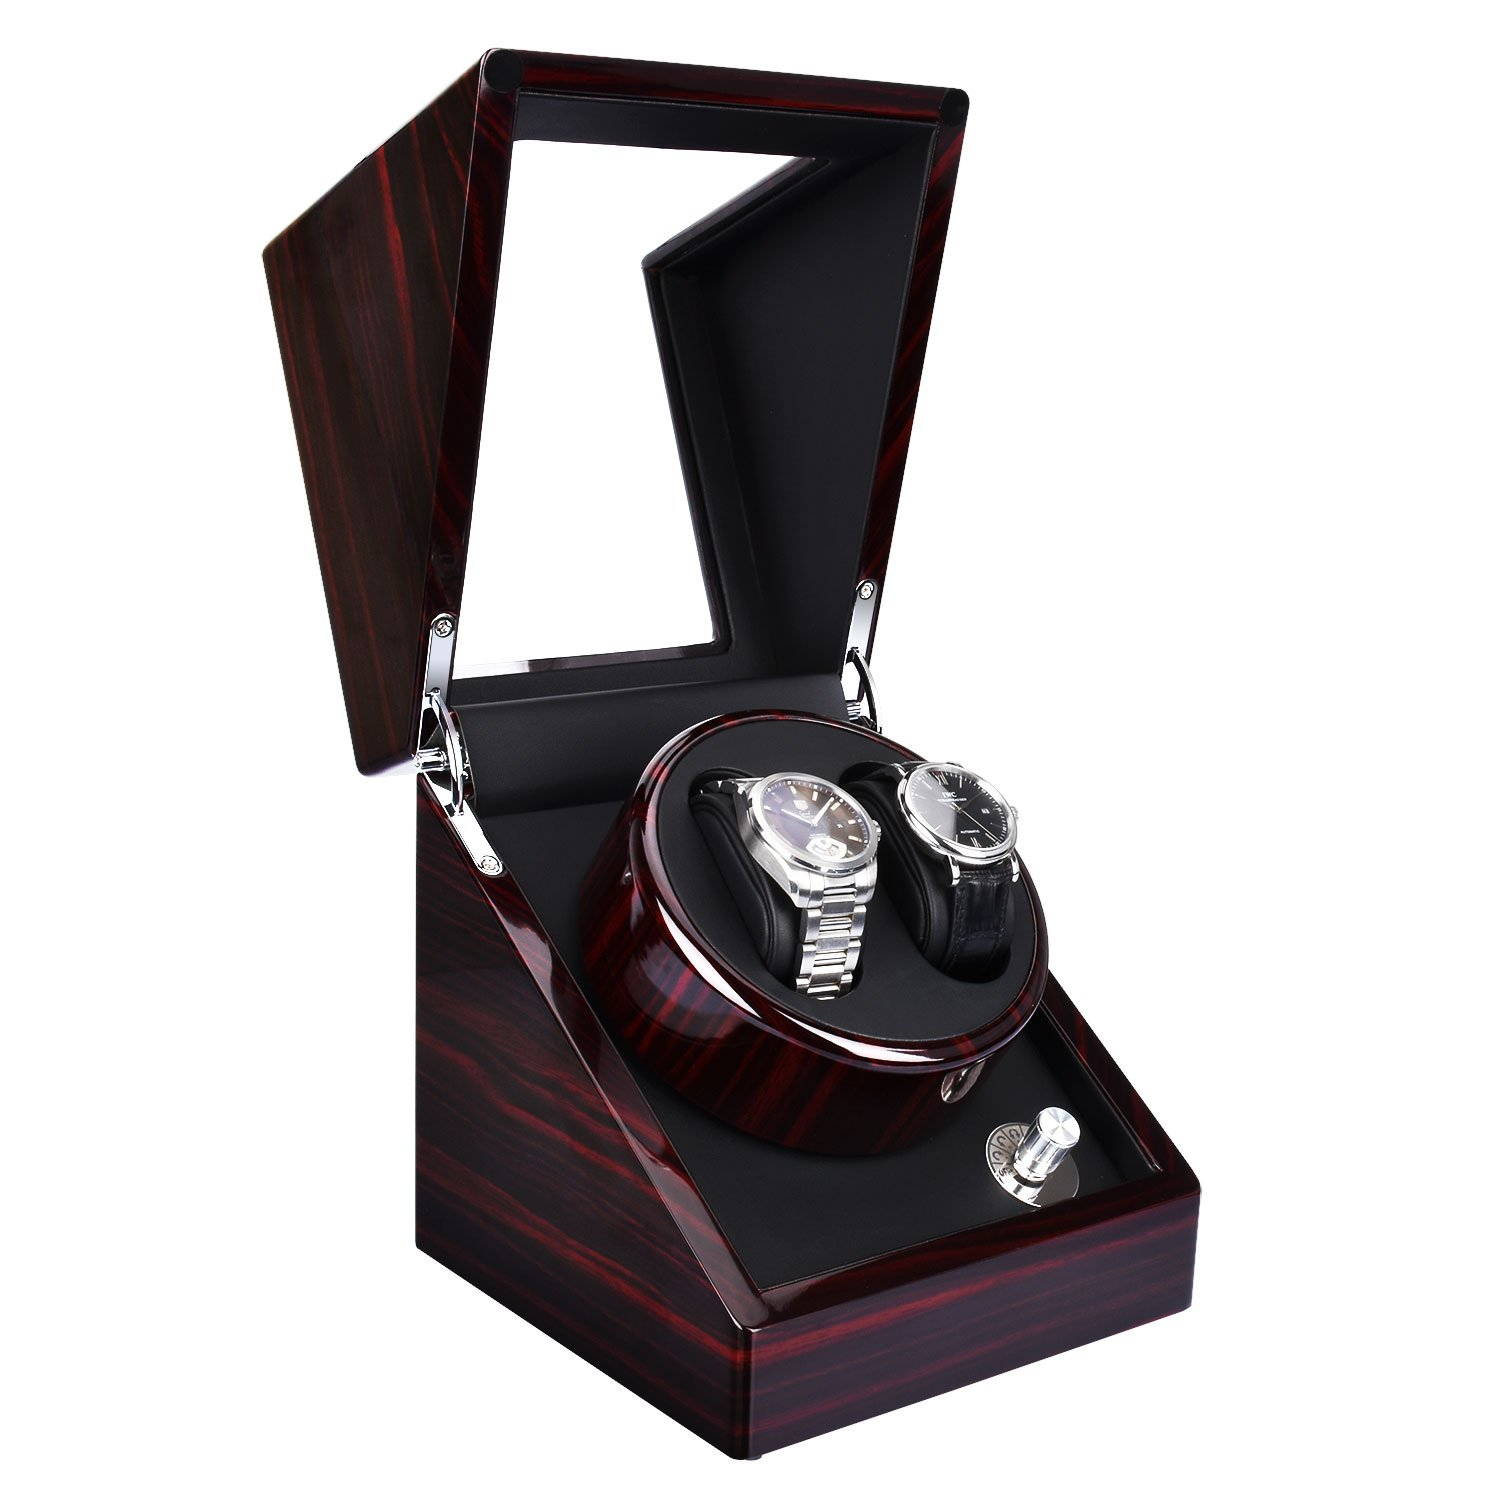 Zeiger Double Watch Winder for Large Watch Box Case Quiet Automatic Japanese Mabuchi Motor Piano Paint